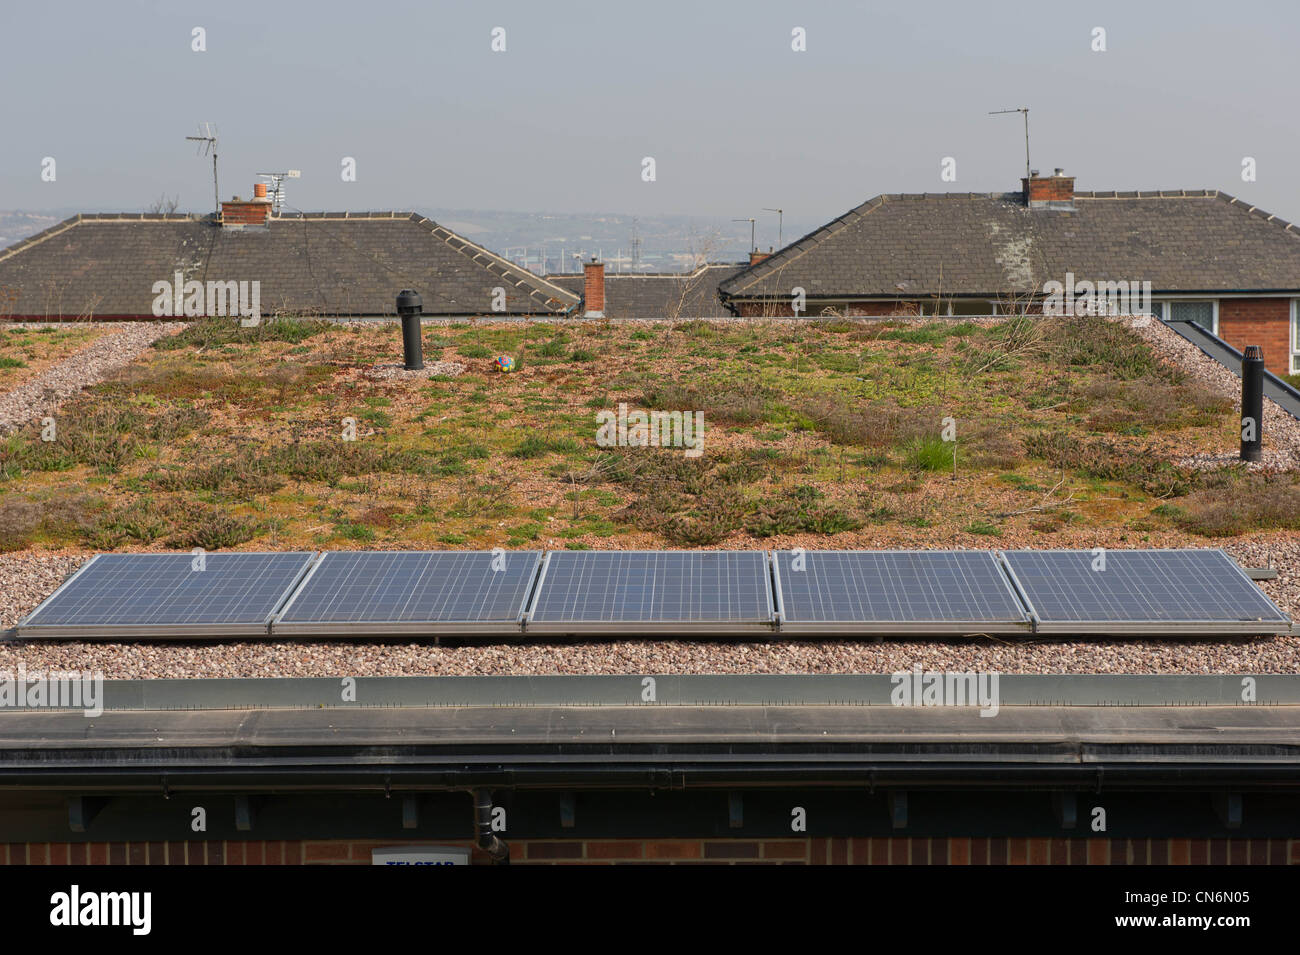 New build social housing with solar panels and a green roof - Stock Image